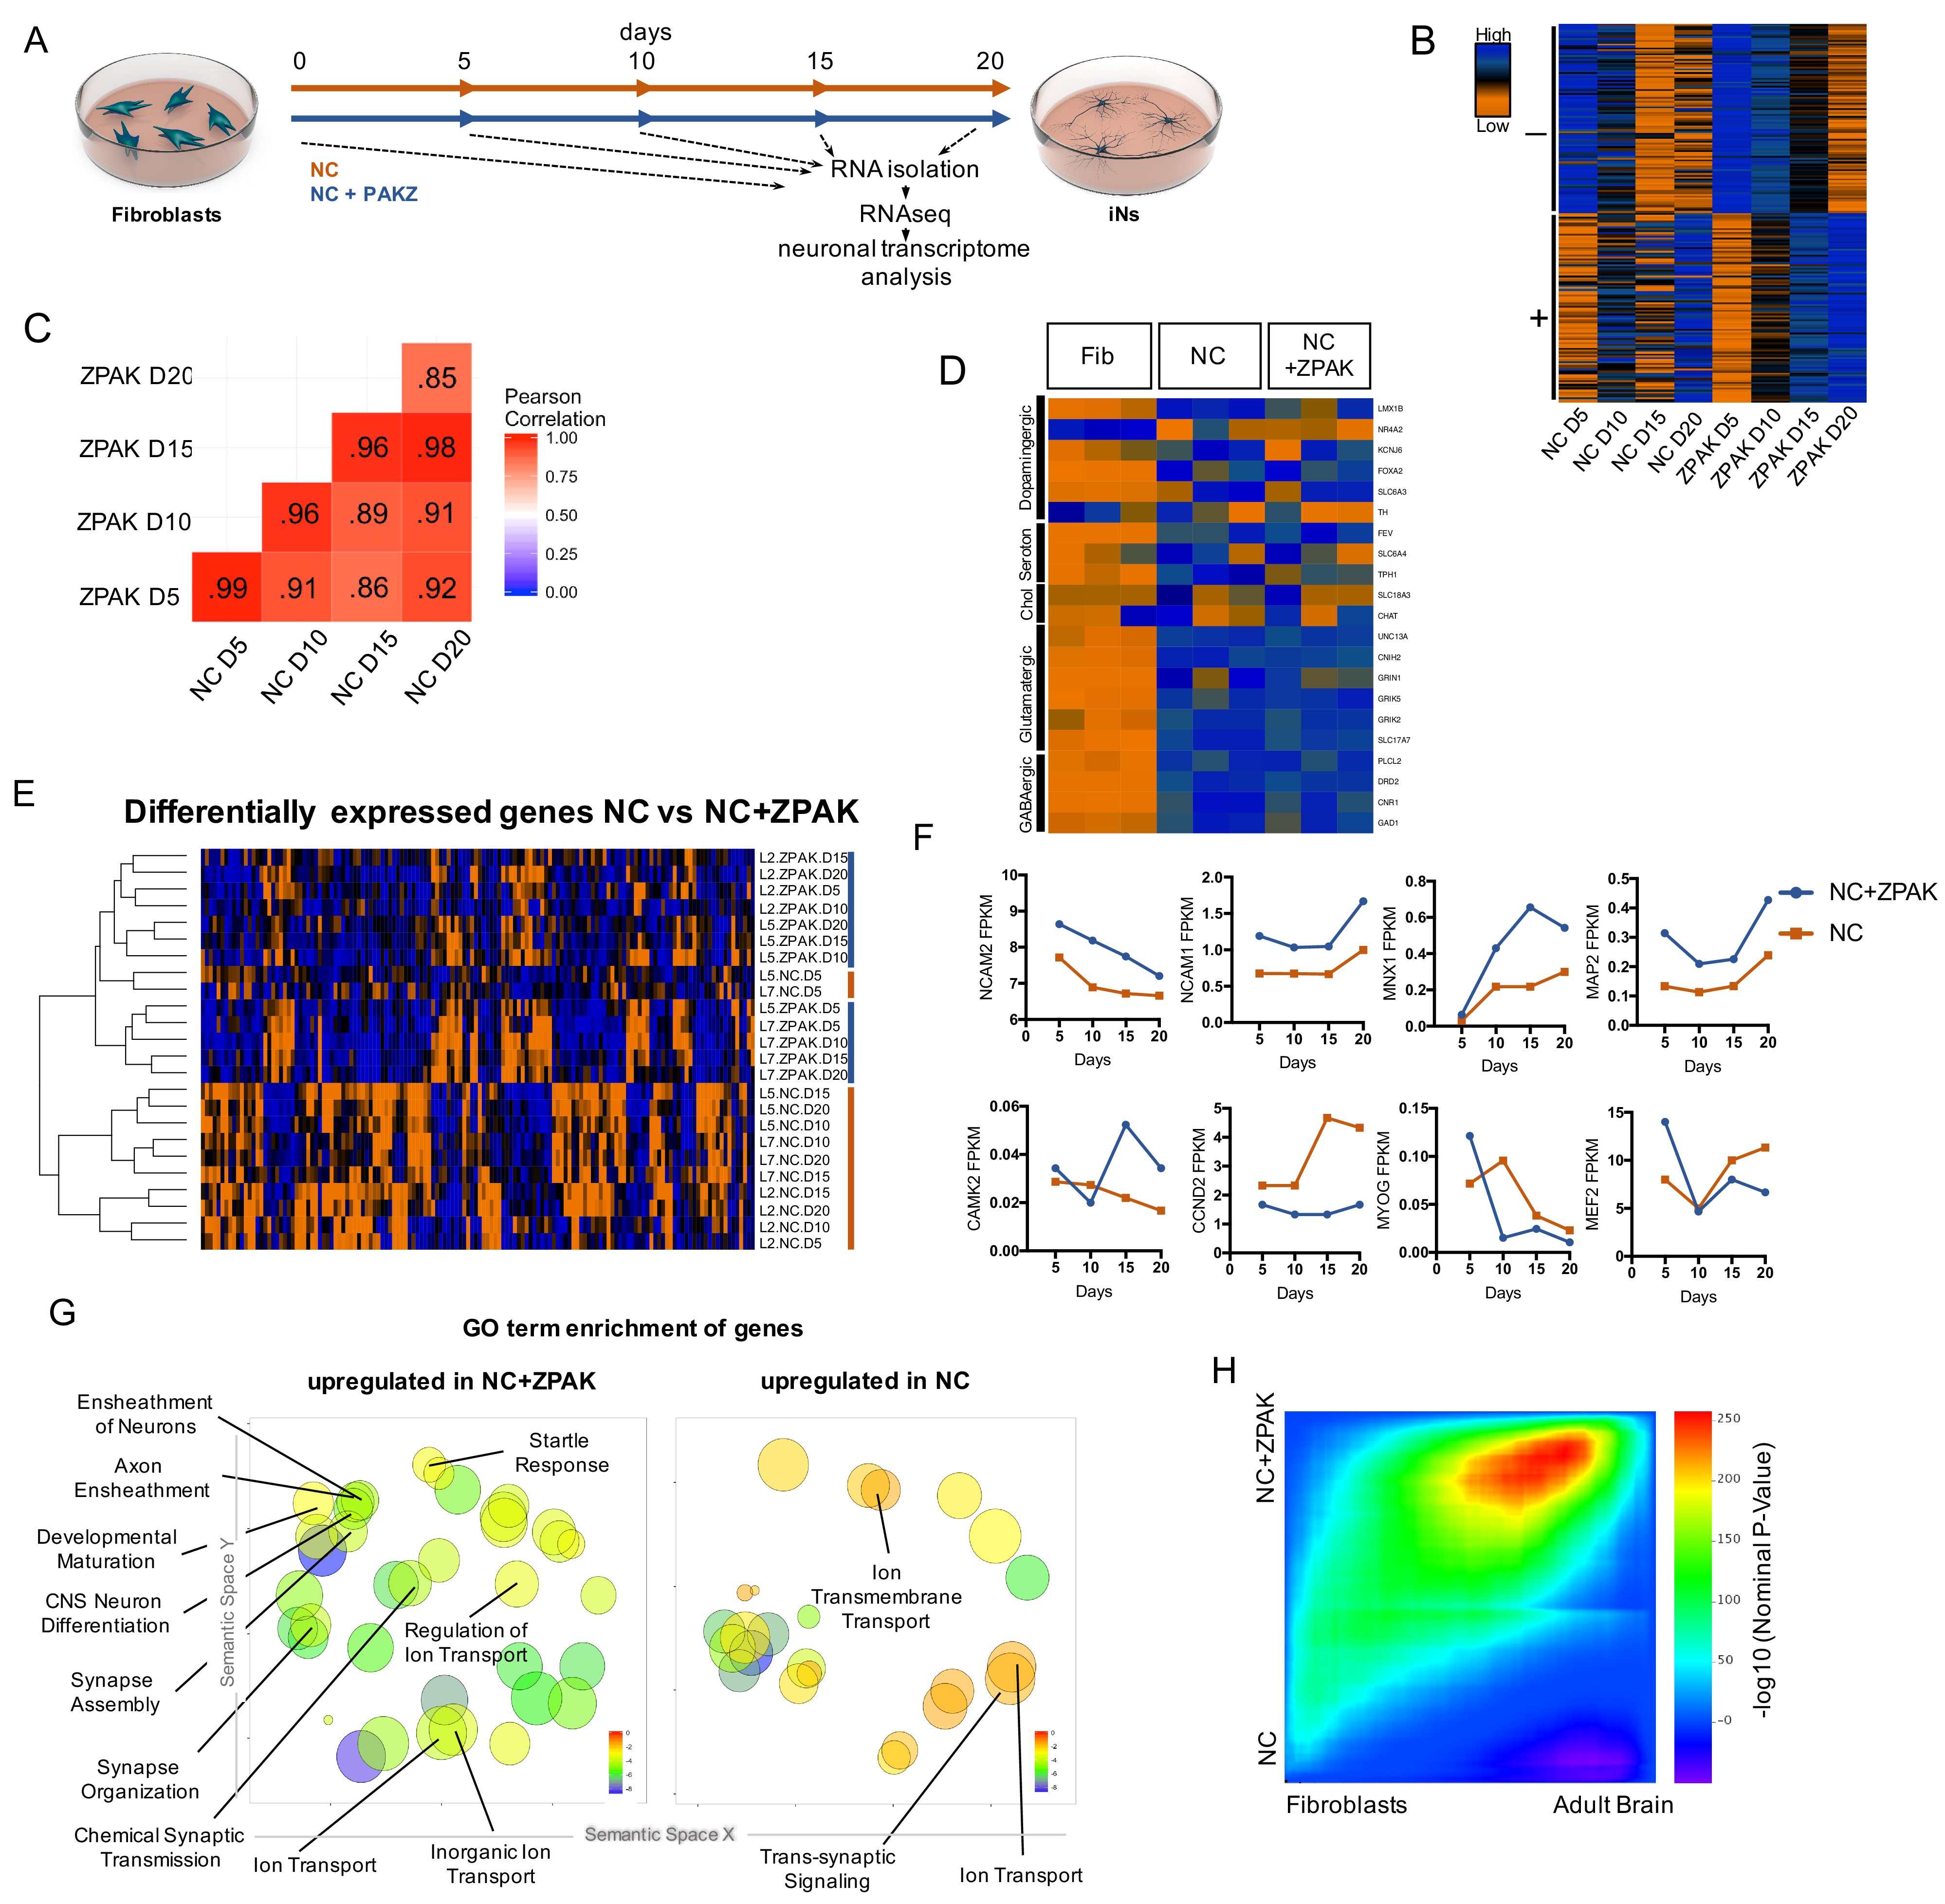 Chemical Modulation Of Transcriptionally Enriched Signaling Pathways To Optimize The Conversion Of Fibroblasts Into Neurons Elife